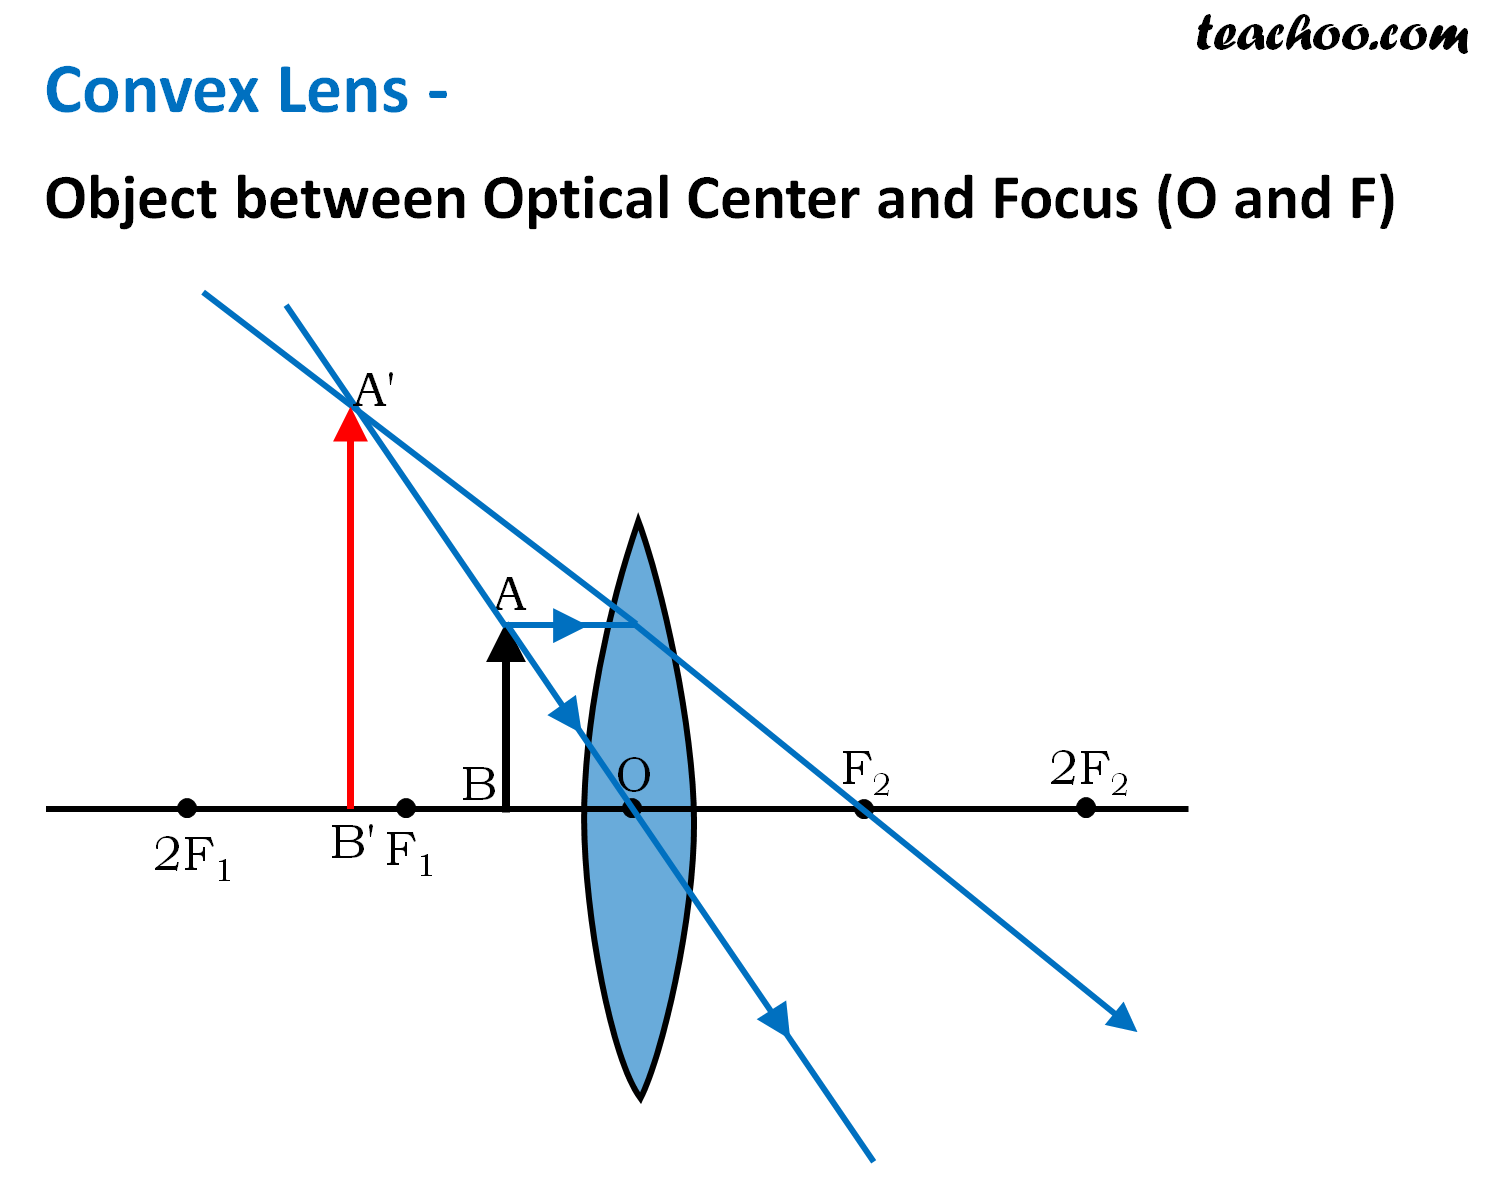 Convex Lens - Object between Optical Center and Focus (O and F) - Teachoo.png